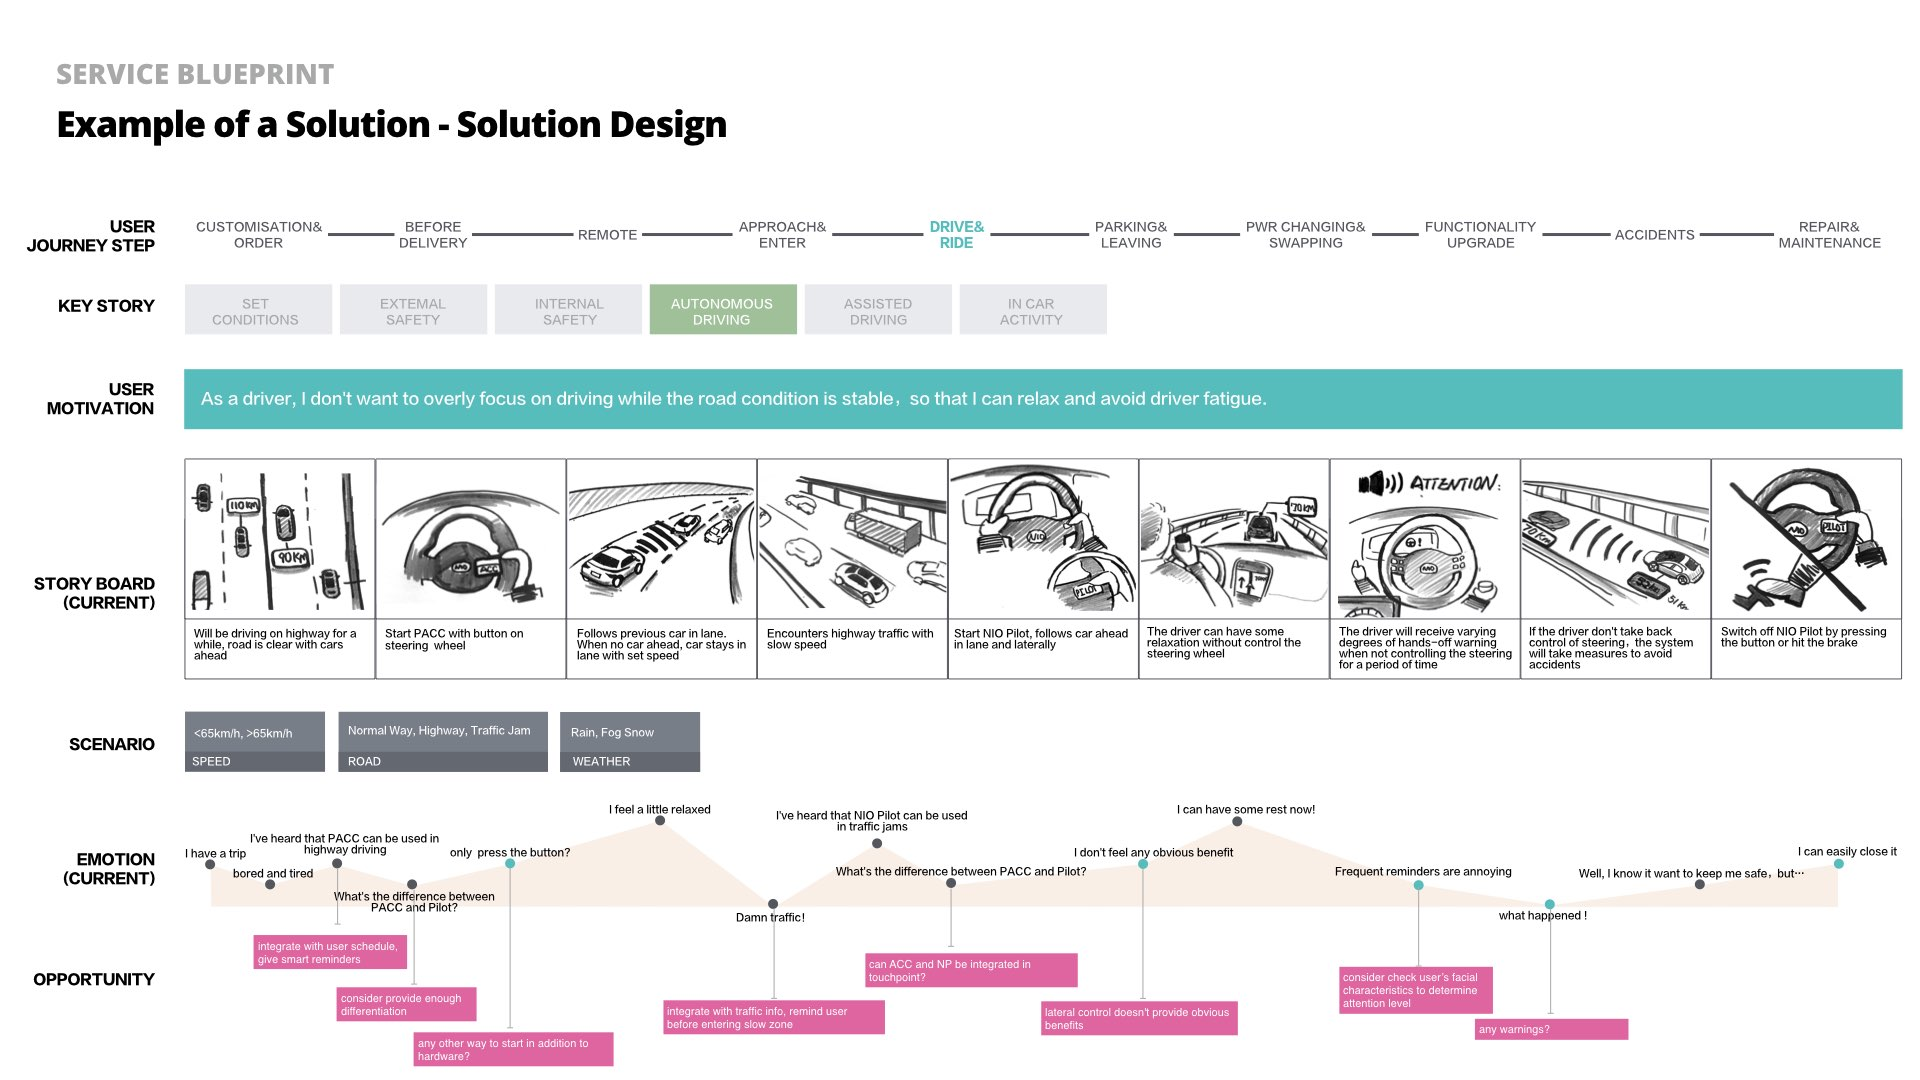 Example of how a single solution can be created and improved with the blueprint platform